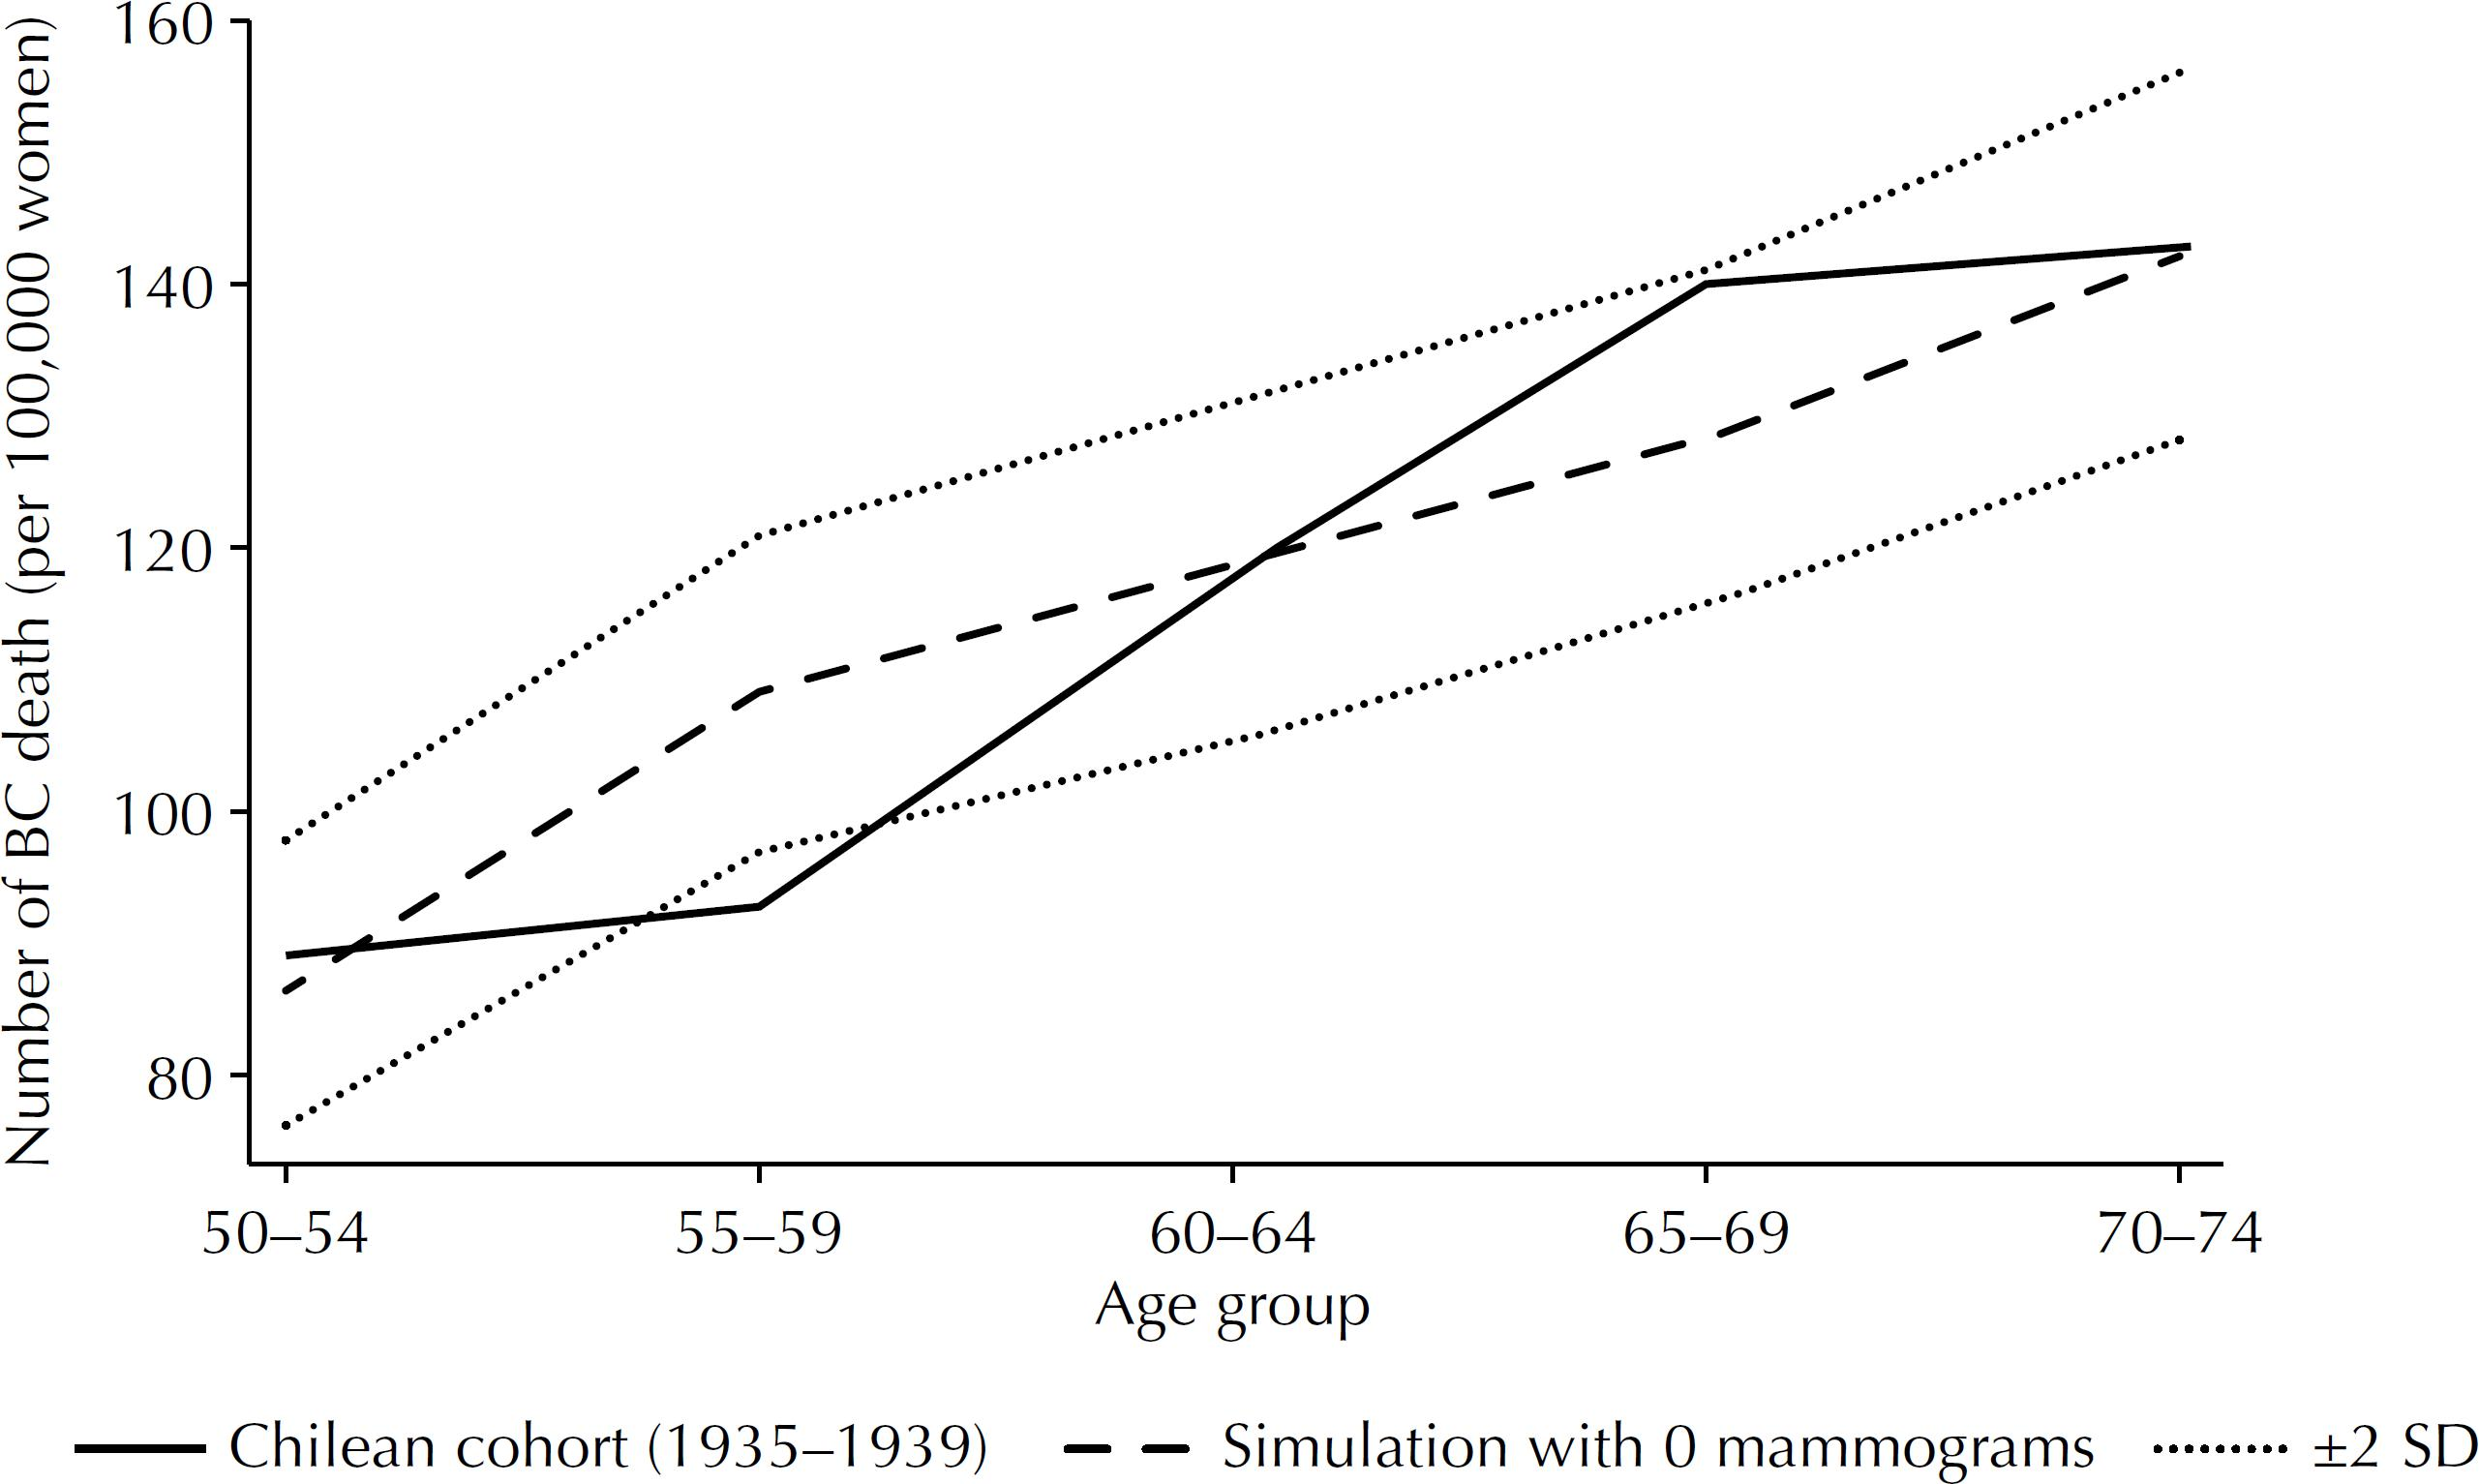 Number of total breast cancer (BC) deaths in 5-year age groups in Chilean women born in 1935–1939 (solid line) and simulation results assuming a population without screening mammography (dashed line).